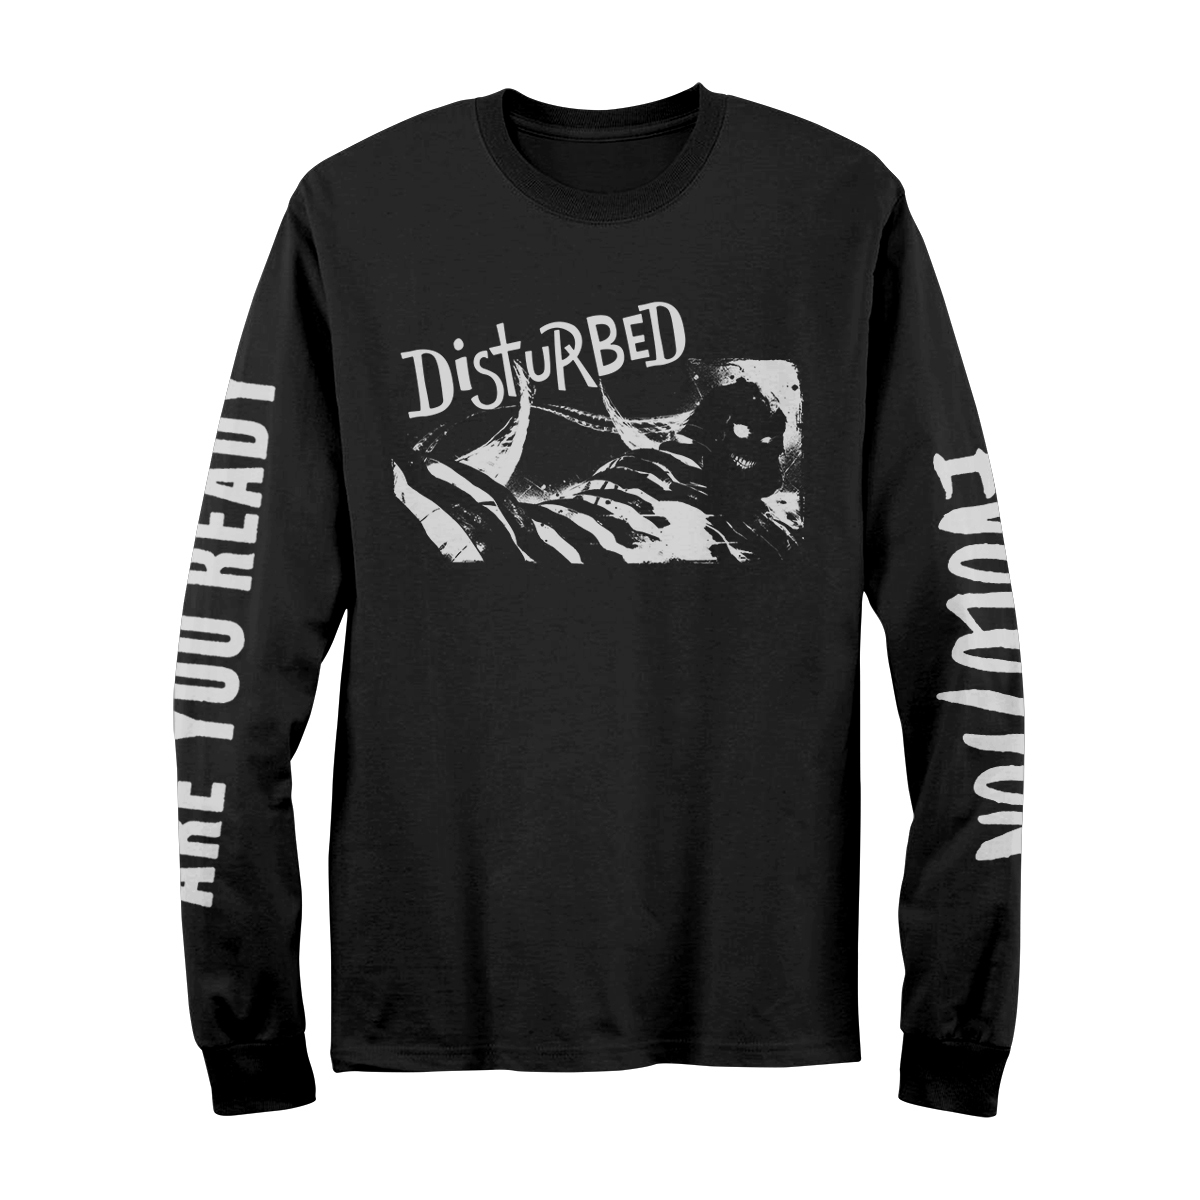 The Guy Evolution Long Sleeve – Web Exclusive